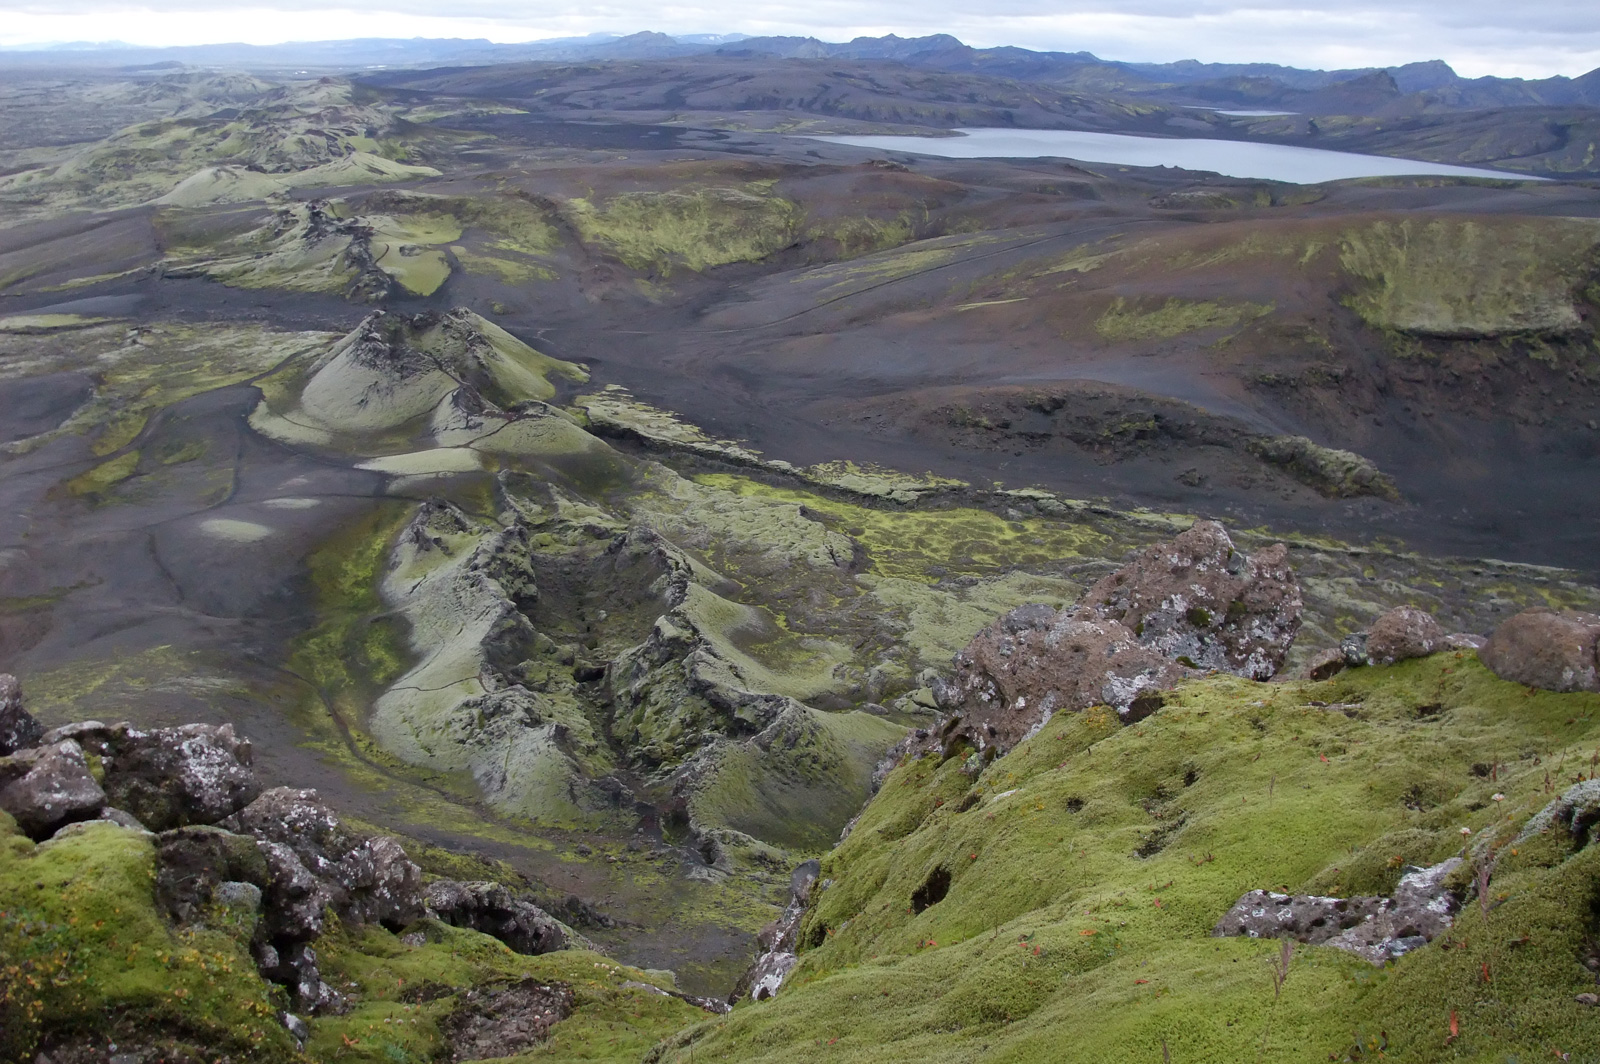 site-visite-incontournable-remarquable-Islande-OliverTrips-4